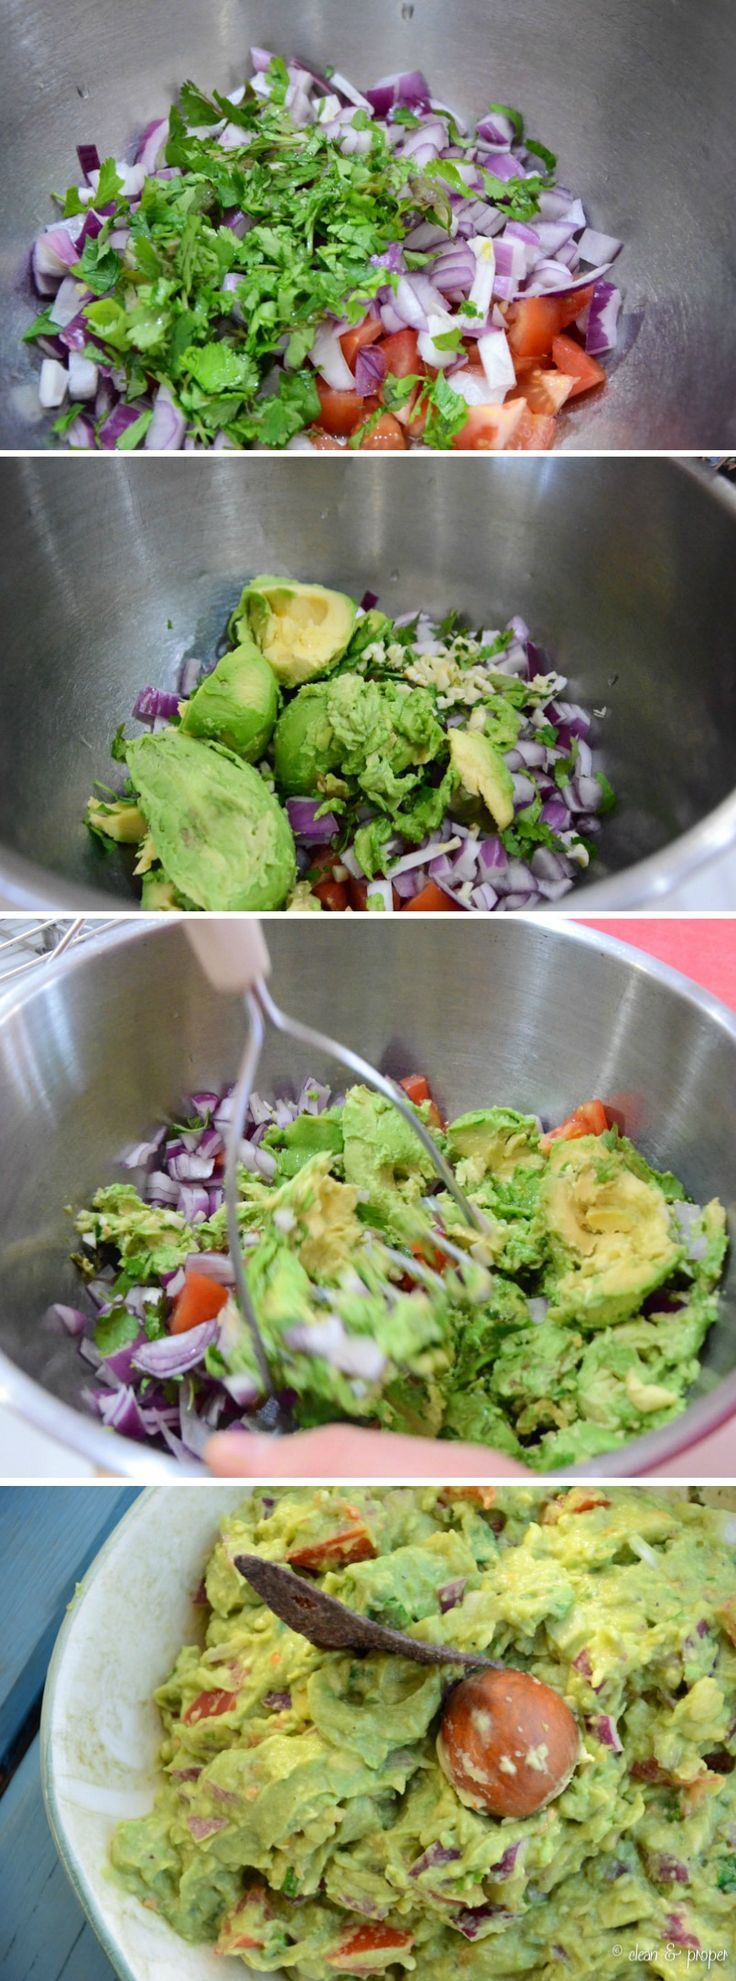 How to Make Guacamole {with Video!} | SimplyRecipes.com